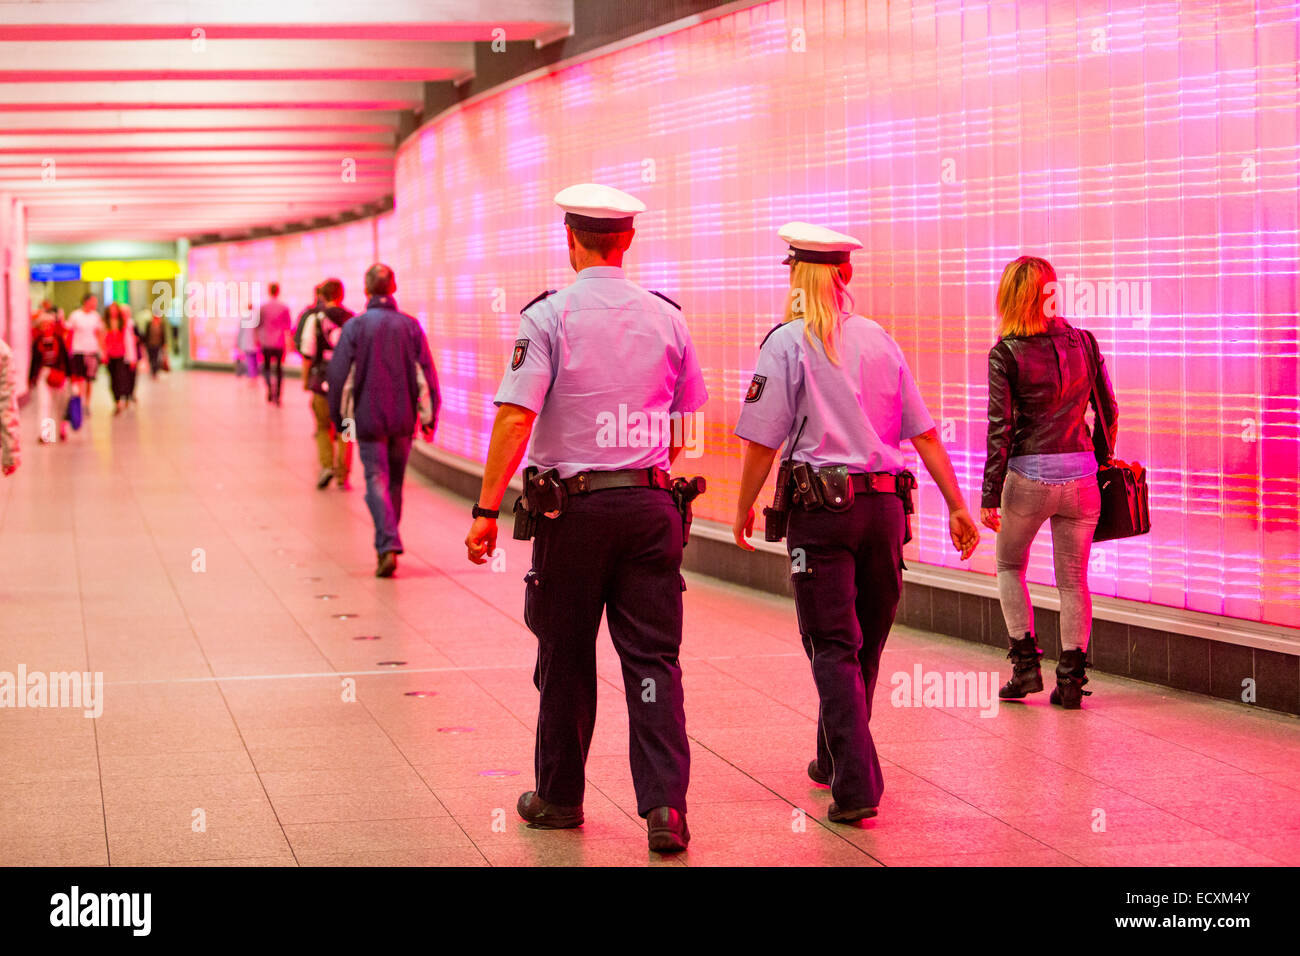 Passengers in an underground passage with a wall of lights, police patrol, - Stock Image